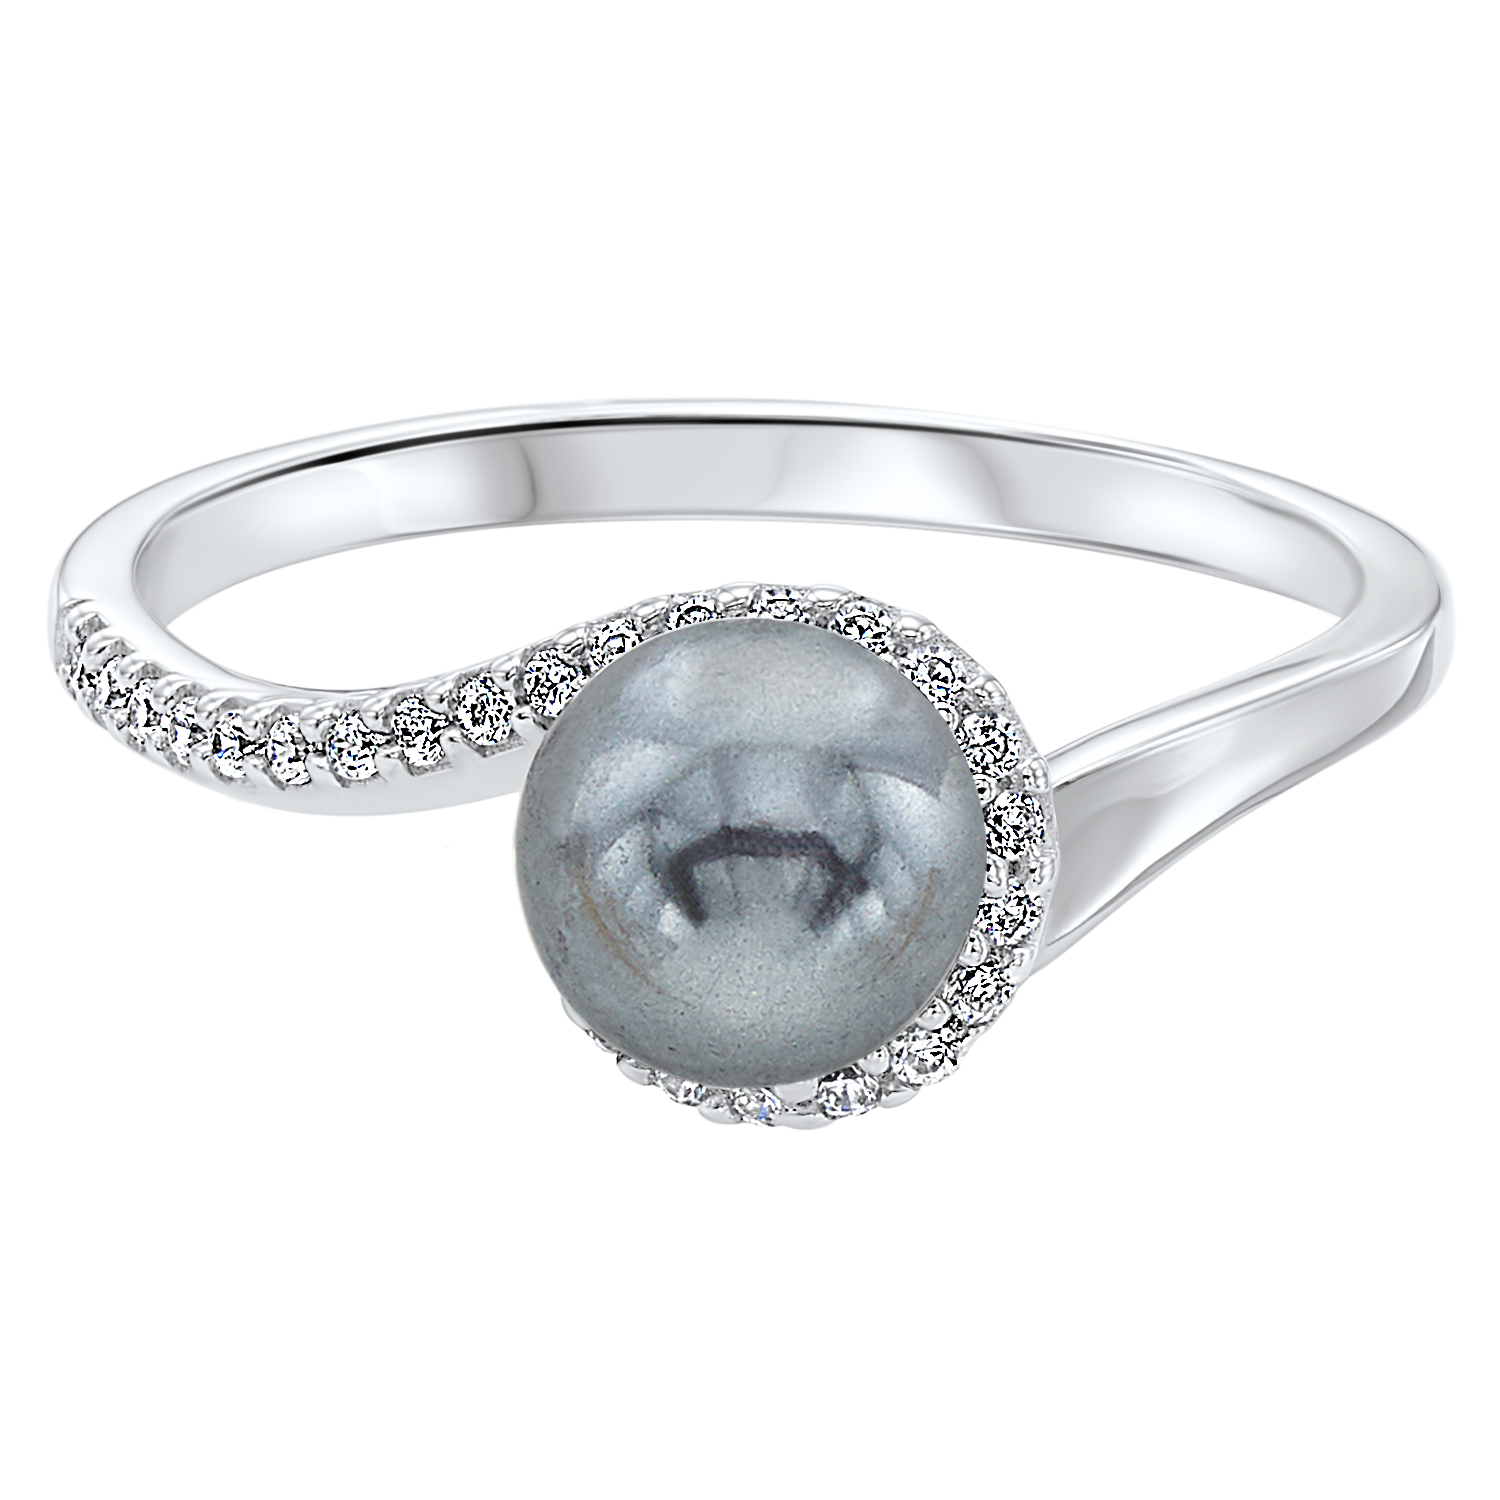 Twisting Shell Pearl Ring in Sterling Silver by Gems One